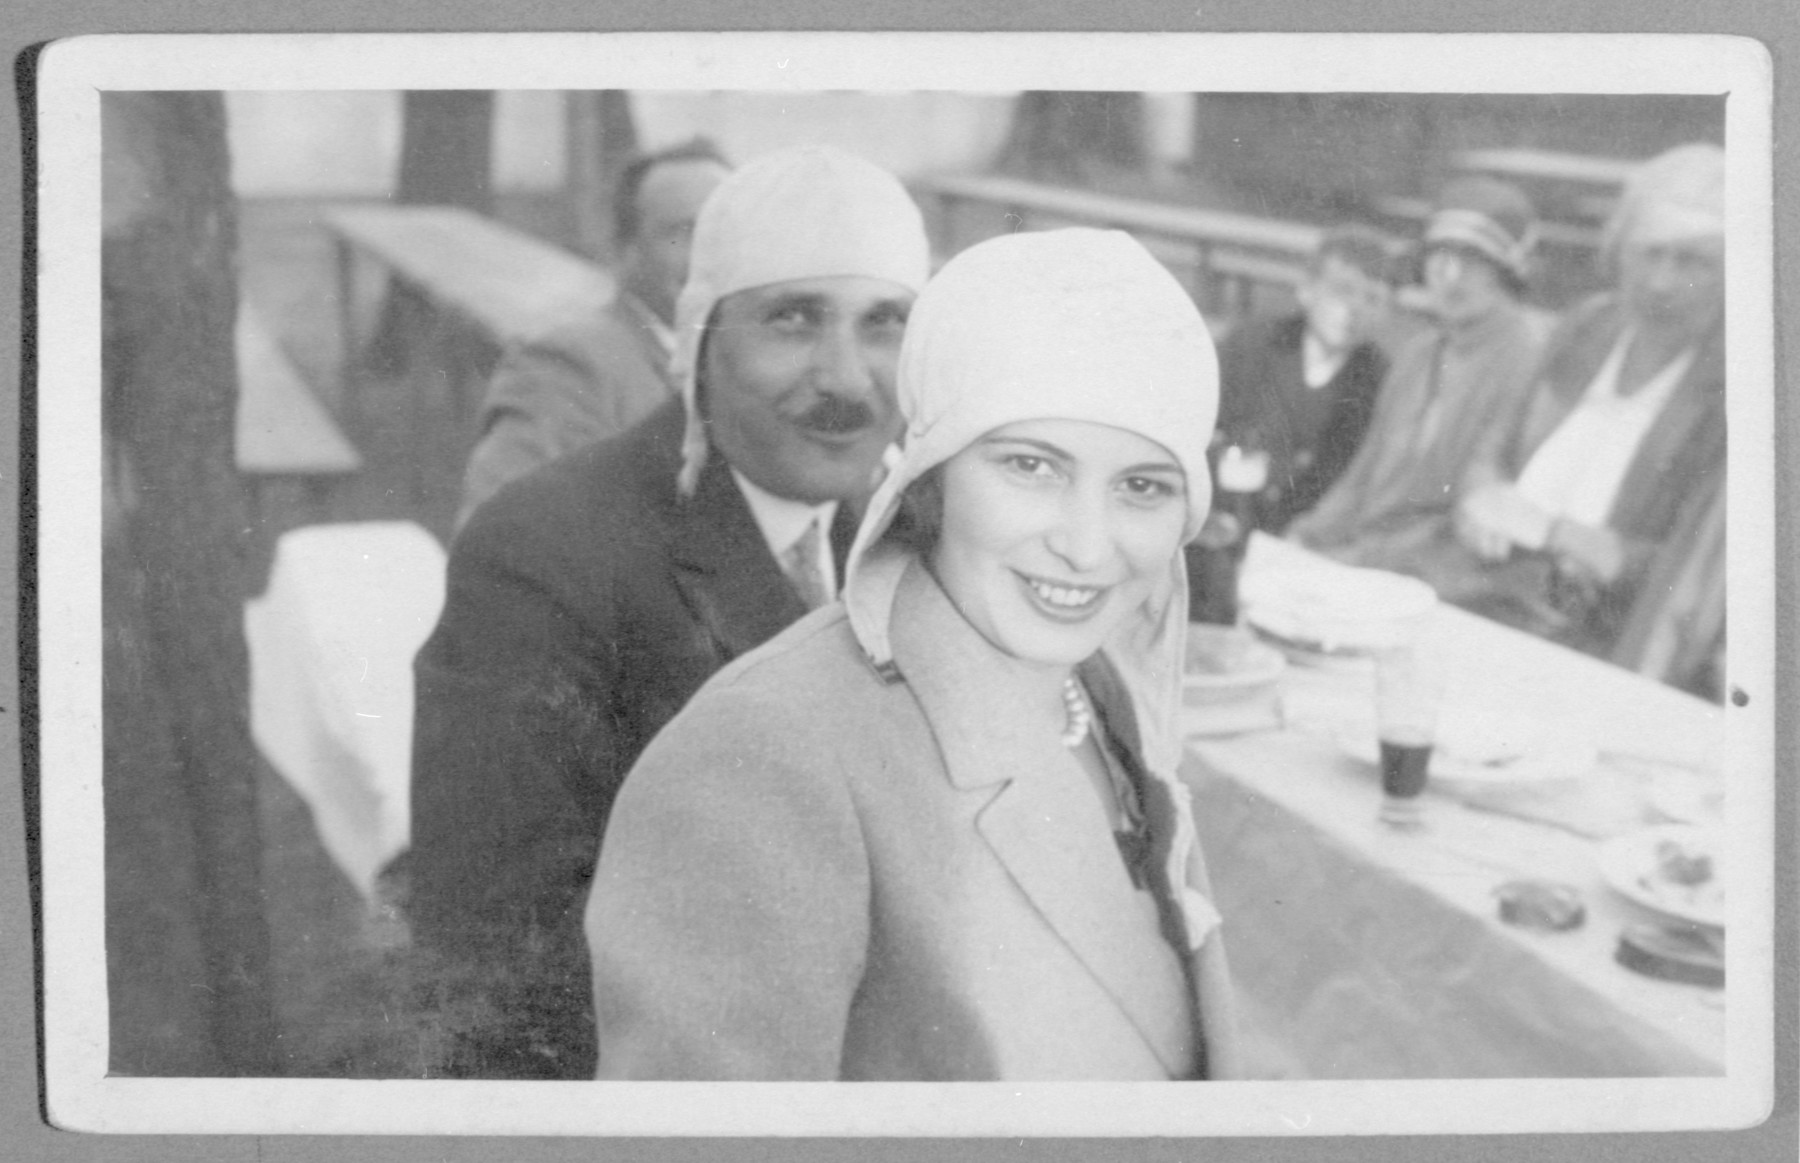 Wilhelm and Franciszka Frister pose for a photograph during an outing in the Beskidy Mountains.